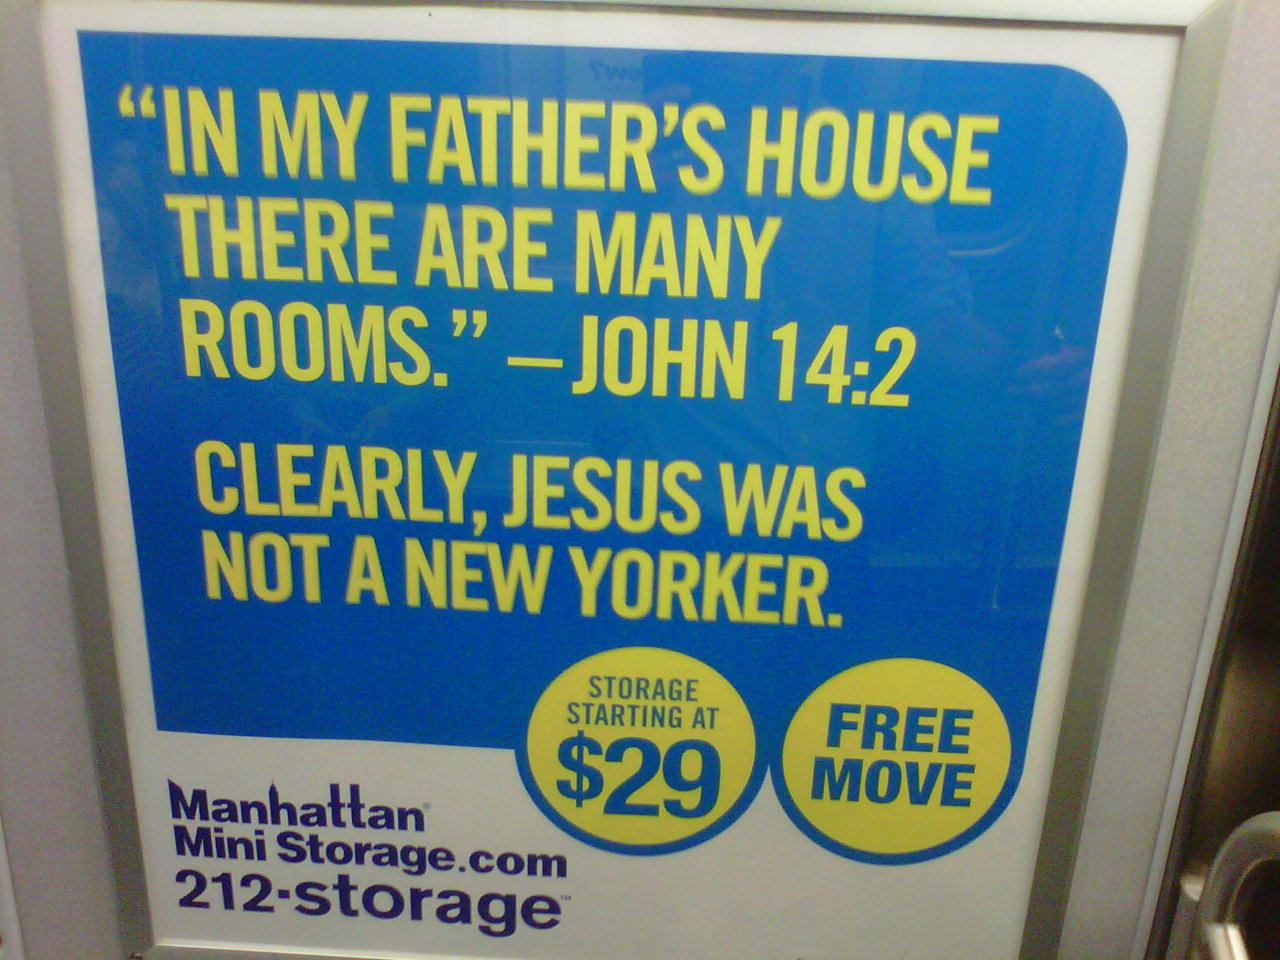 """NO, JESUS IS A NEW YORKER    Manhattan Mini Storage got it wrong. Jesus is a New Yorker. He lives next to me in 2A. Mary Magdalene is over all the time. They sip on water + wine, on ice. You know it's his apt because there's a crown of thorns hanging on his door. Lady Gaga comes over to wash his feet with her hair. People sometimes arrive in wheel chairs and leave walking. On Tuesday nights we have Bible Study. Jesus wore an I HEART GAY MARRIAGE T-shirt yesterday. Last night we did cabaret night at the Duplex. Tonight I'm bringing over scissors and we are going to cut him some face frame bangs. On the night of Whitney's passing he sang """"I'm Every Woman"""" at Karaoke in Korea Town. Today he is ministering in Union Square. I assure you, Jesus IS a New Yorker. More-so than you."""